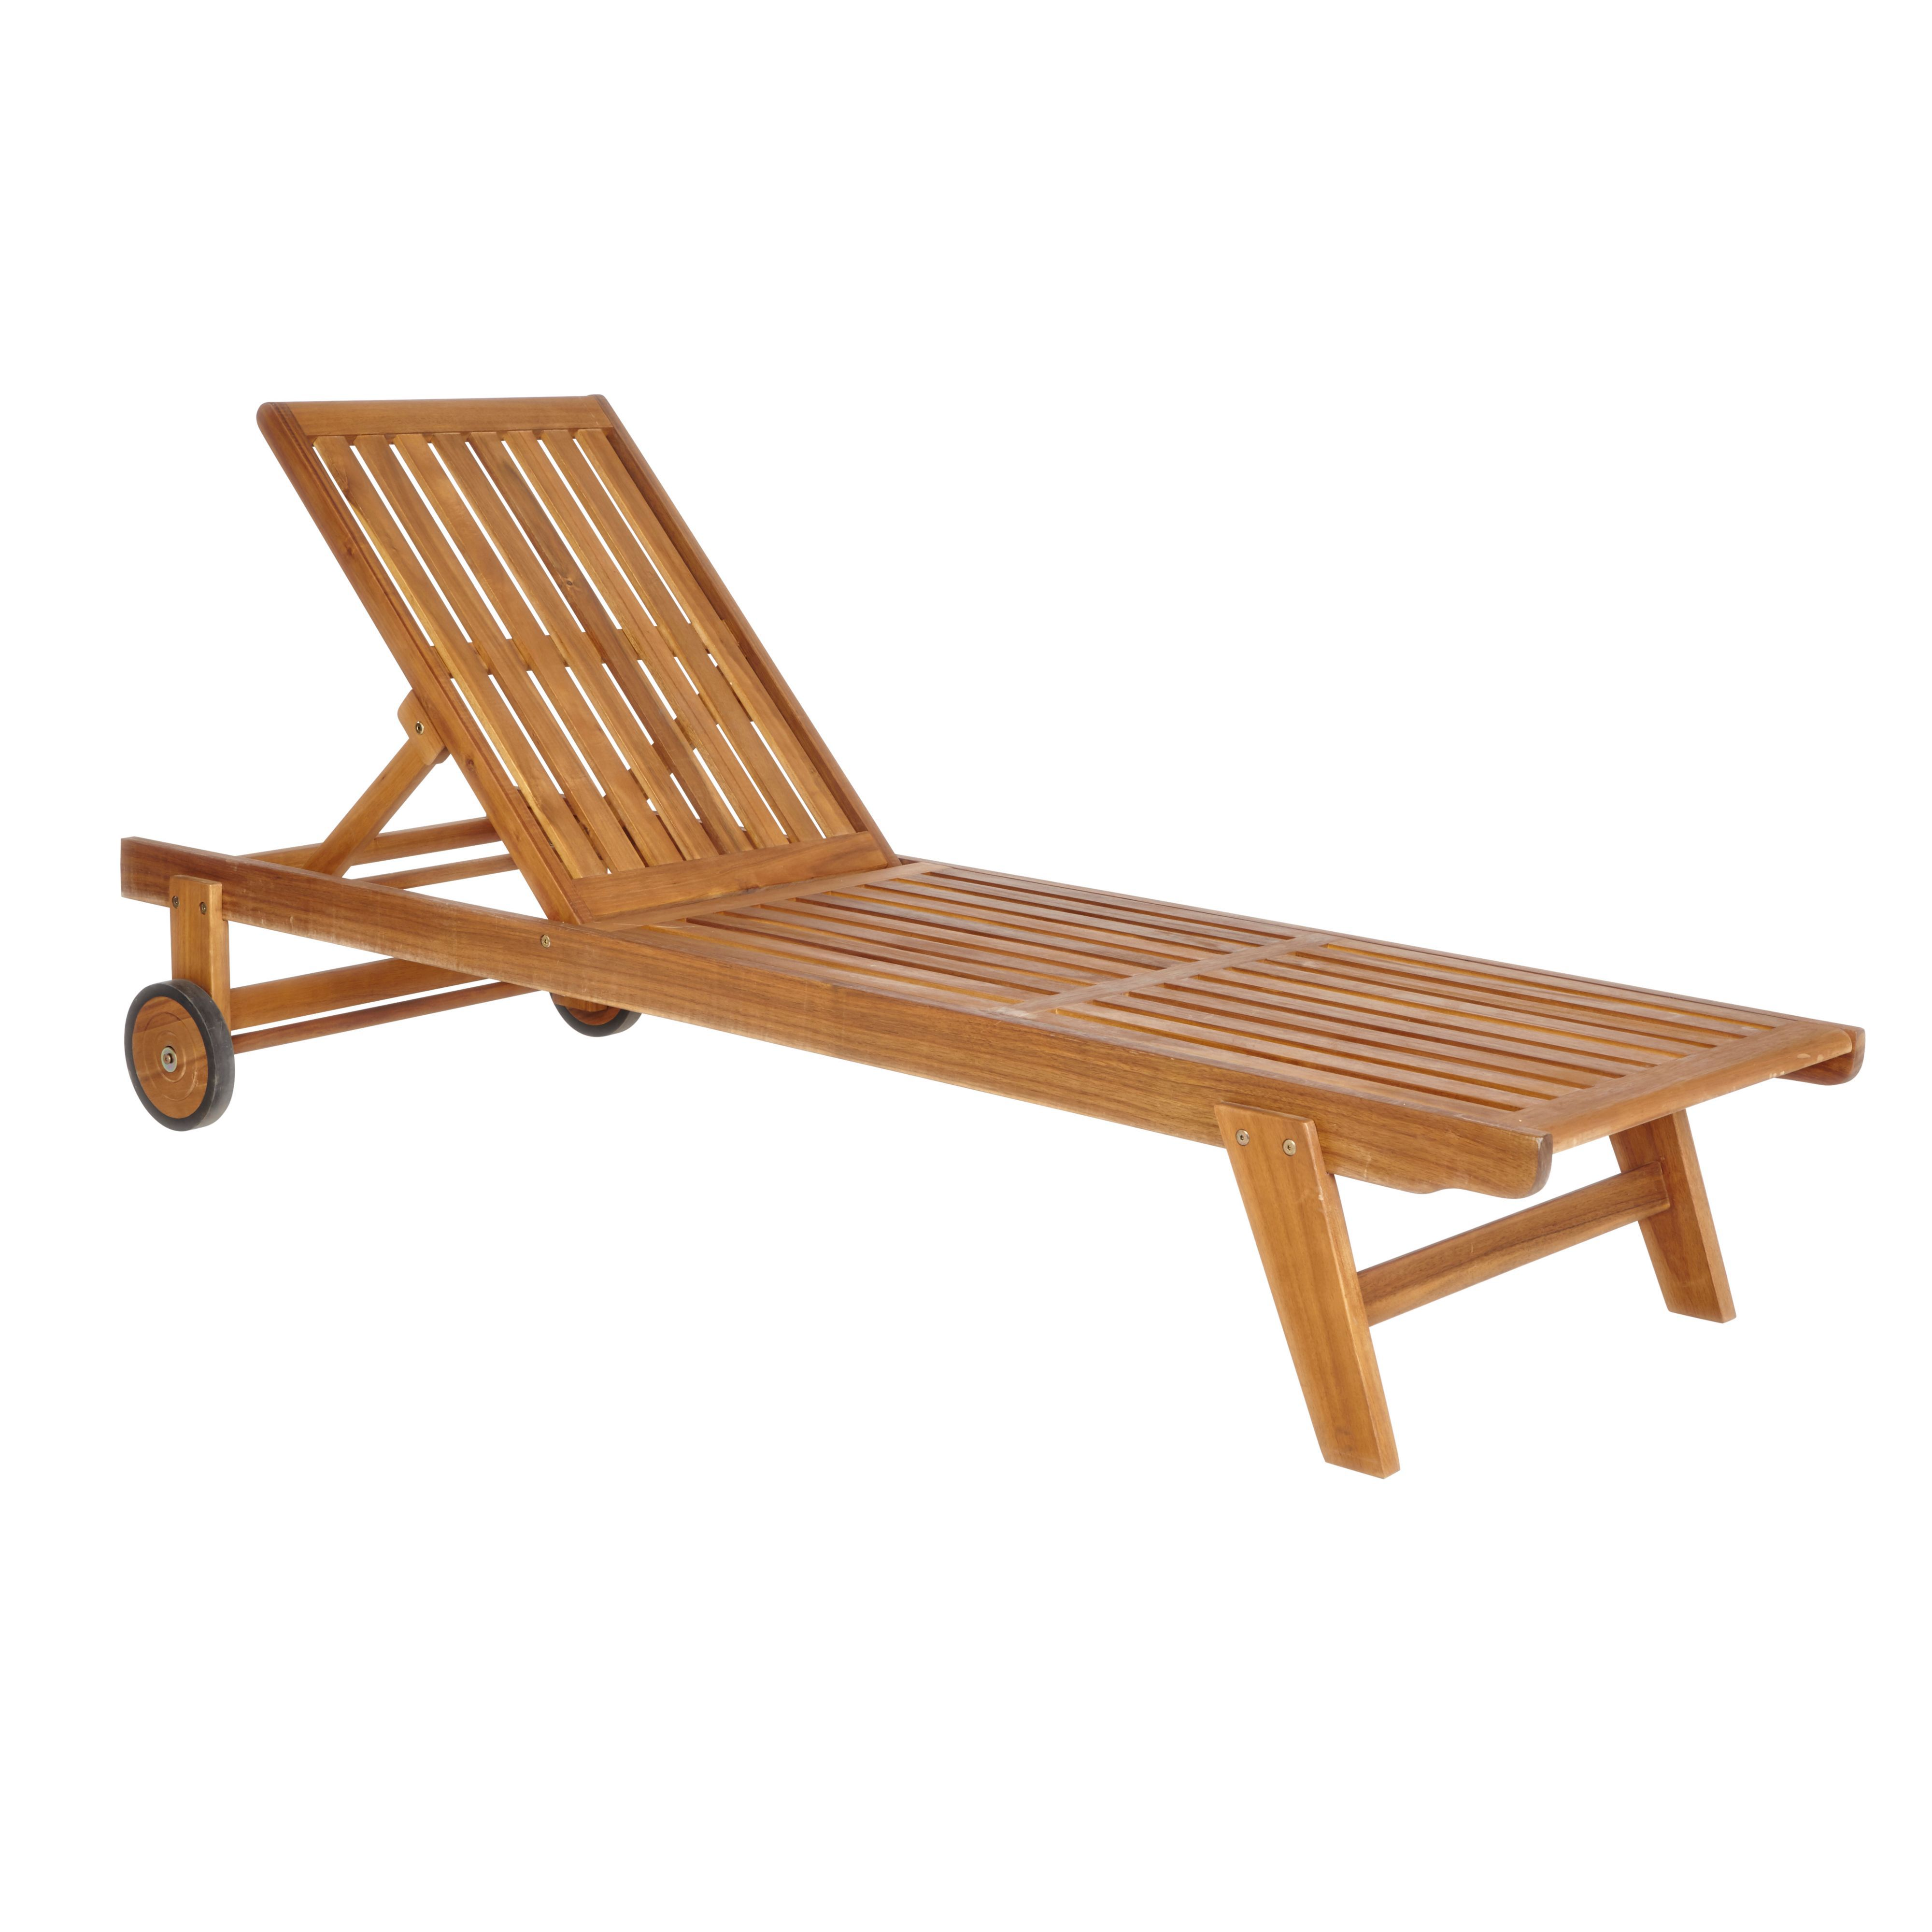 victoria wooden sunlounger departments diy at b q. Black Bedroom Furniture Sets. Home Design Ideas